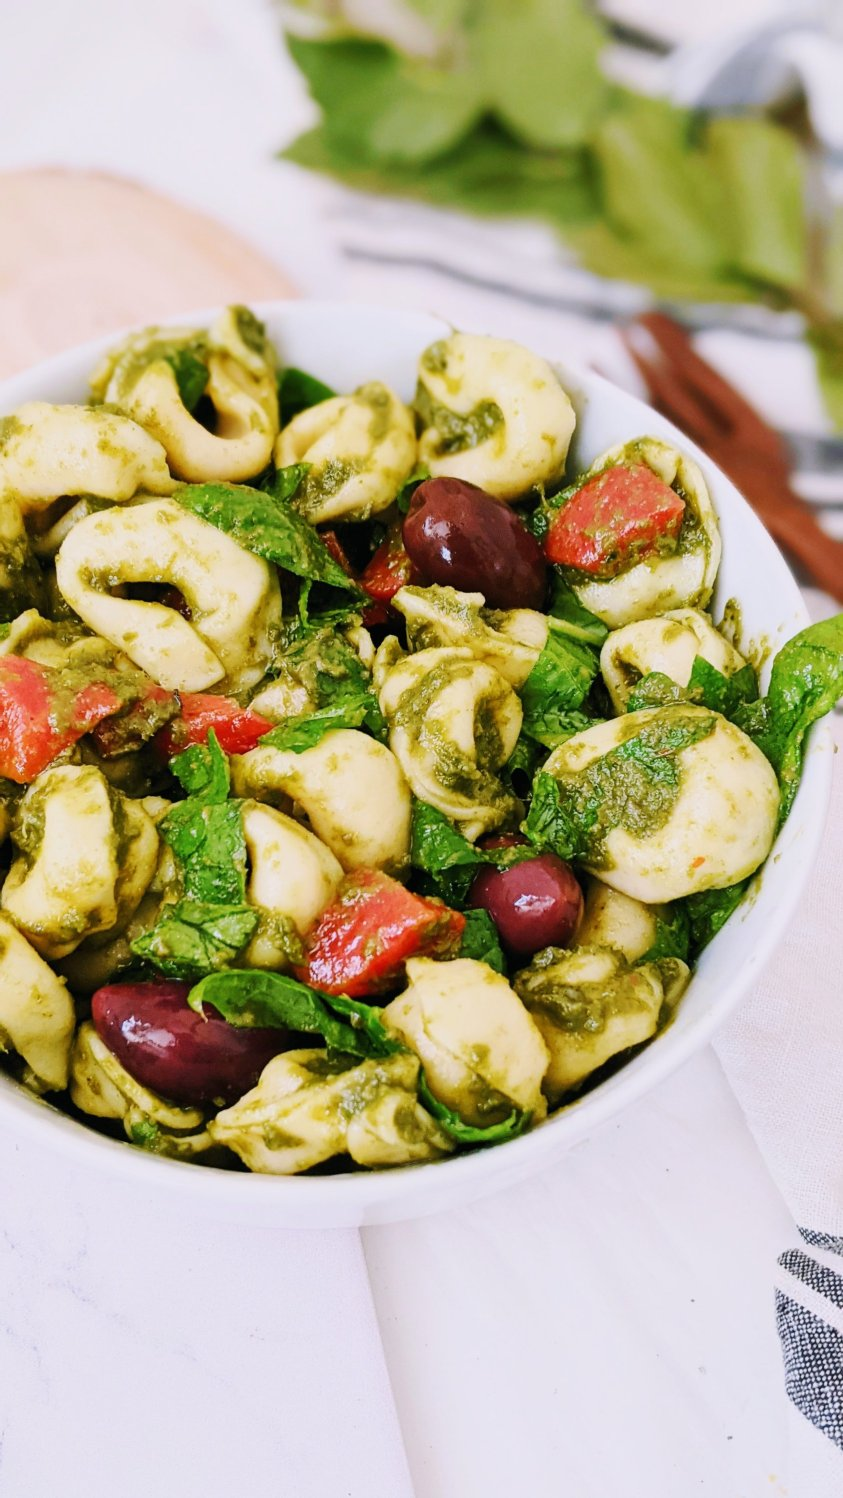 pesto tortellini pasta salad recipe meatless pasta salads for bbqs and entertaining 30 minute summer side dish recipes healthy salads